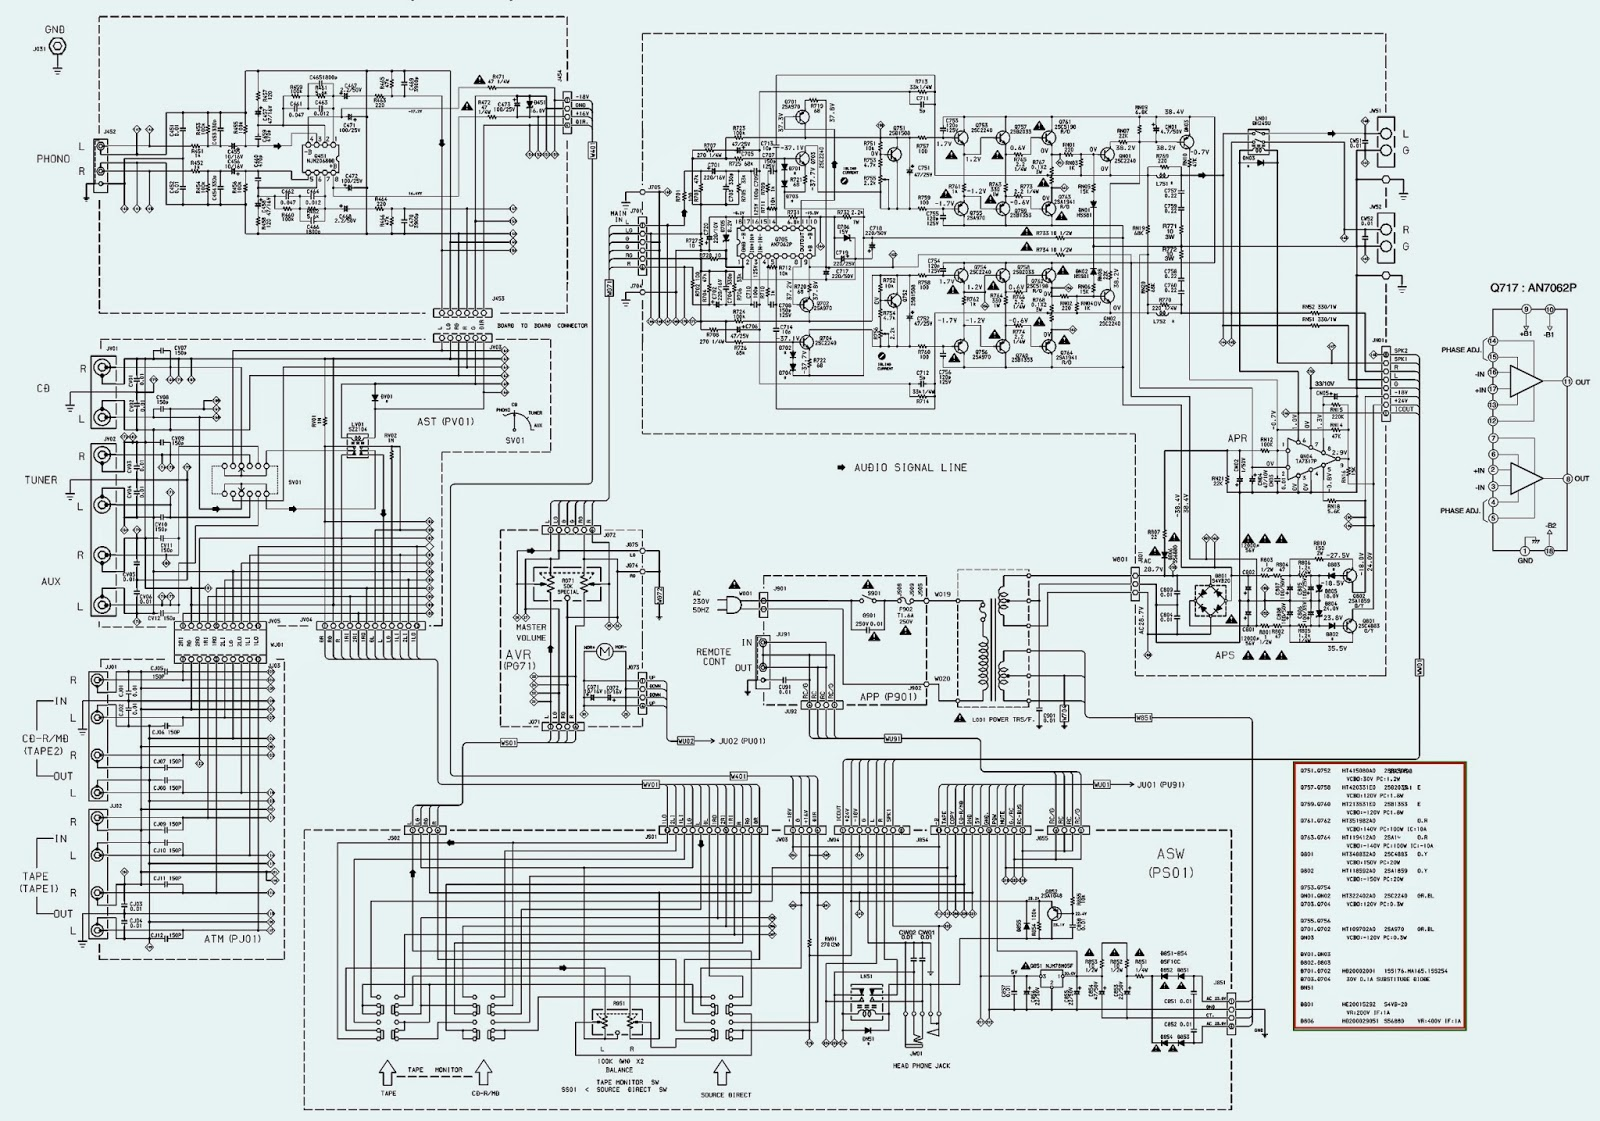 Wiring Diagram Info Marantz Pm6010 Ose Schematic Mixed Labels